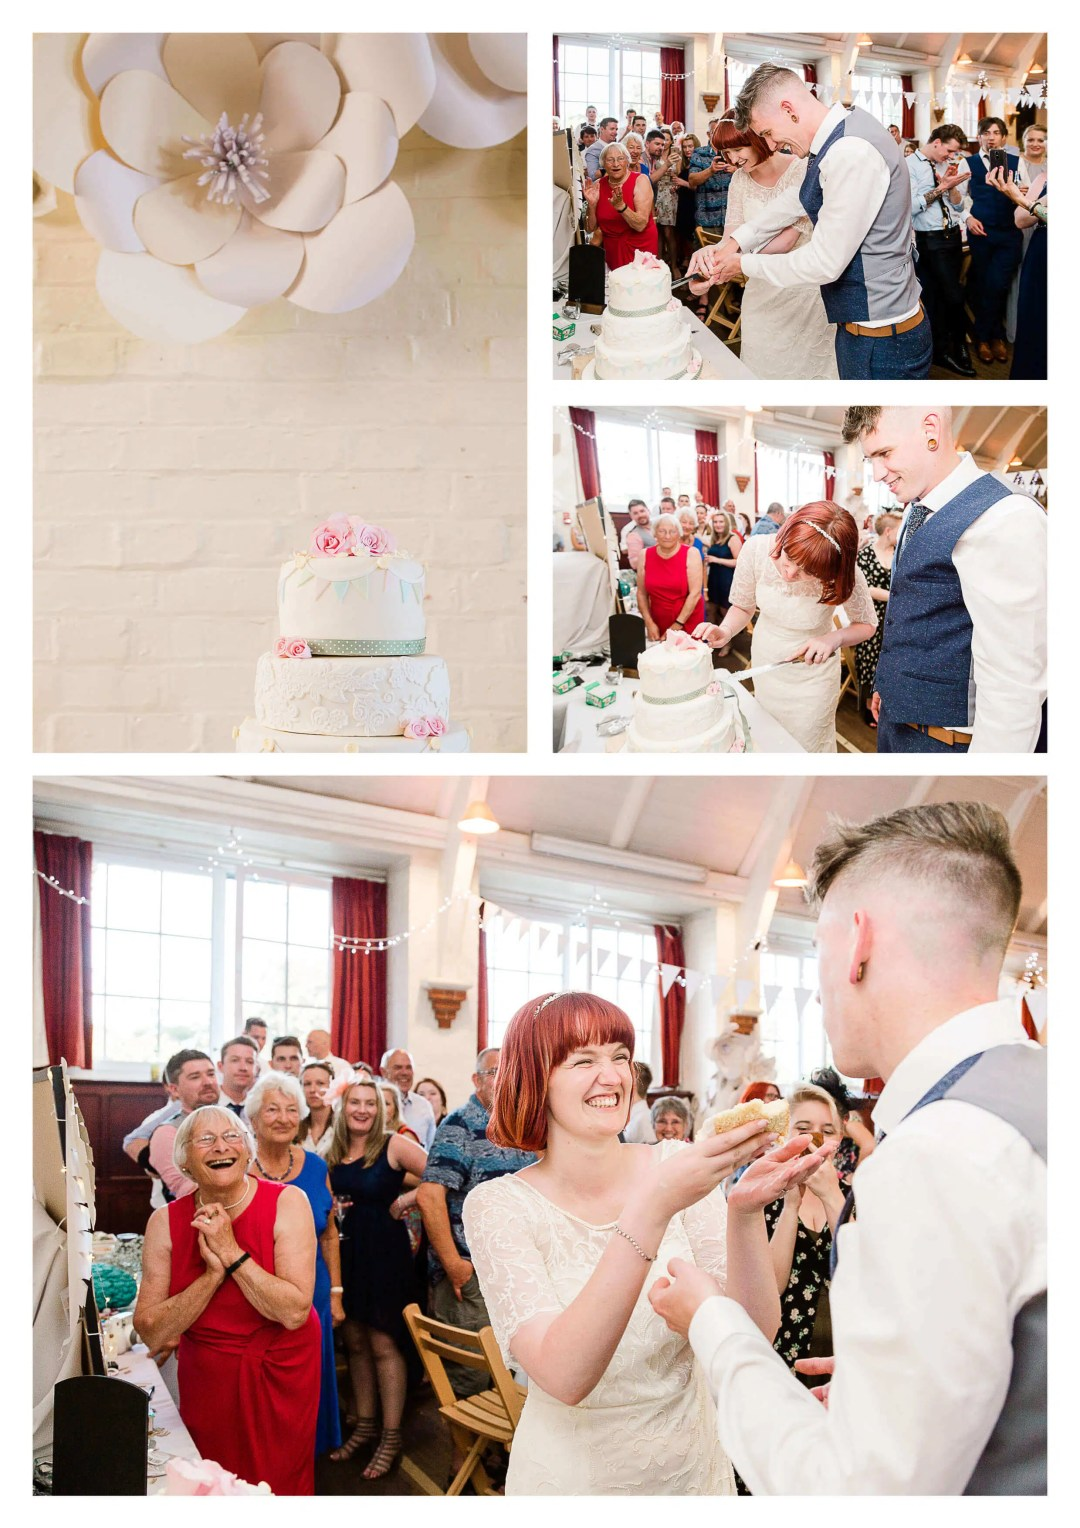 Worplesdon Memorial Hall wedding cake cutting photography | Guildford Photographer